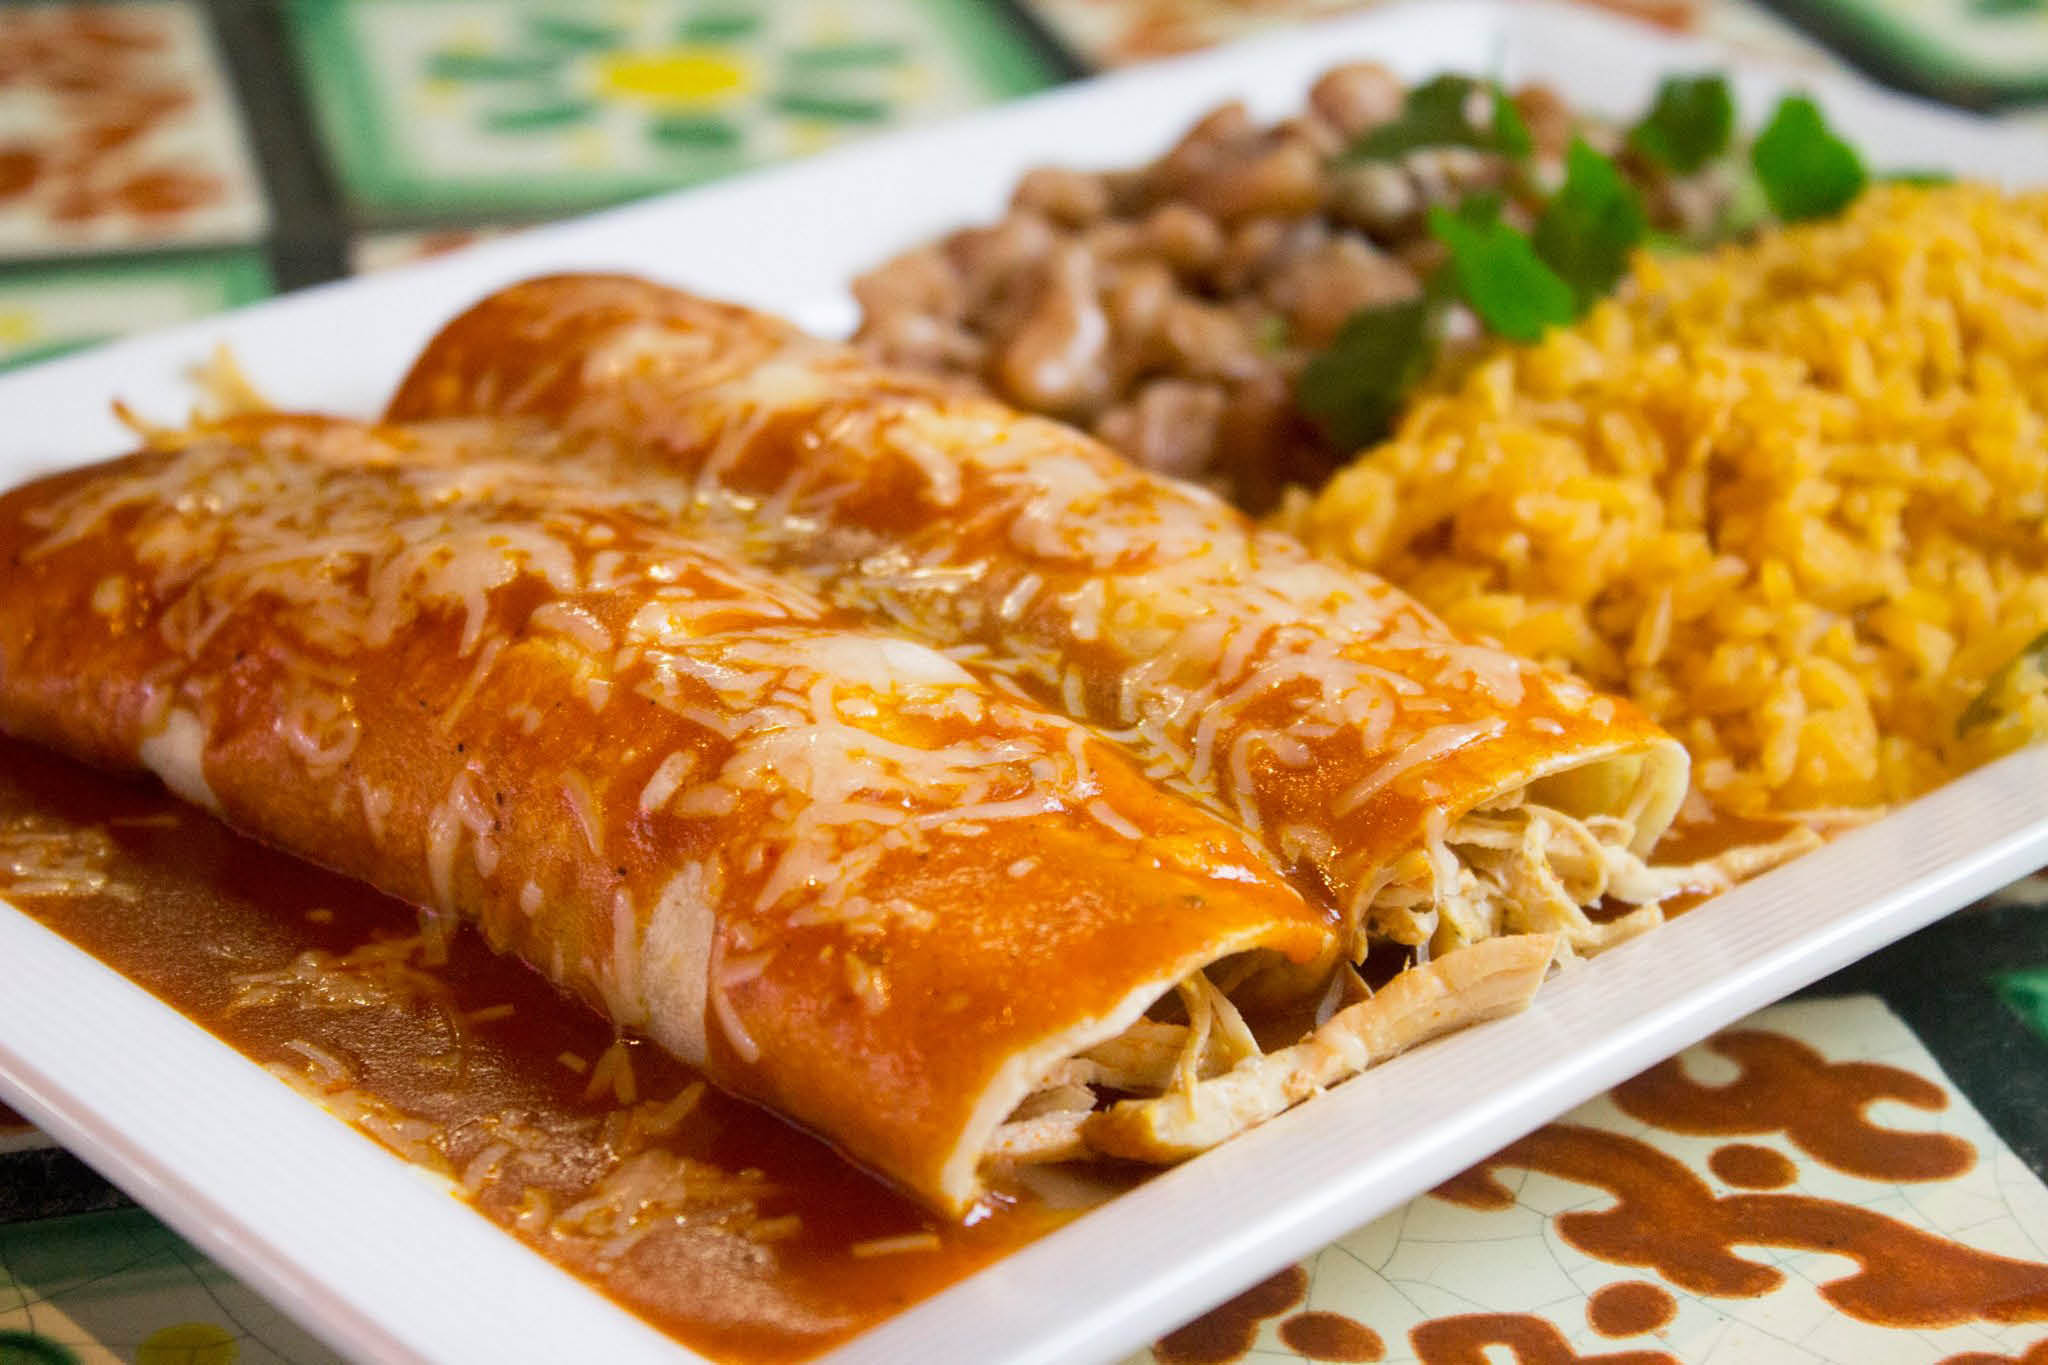 La Palmera Mexican Restaurant & Lounge - Everett, WA - Mill Creek, WA - enchiladas - Mexican food in Everett - Mexican food in Mill Creek